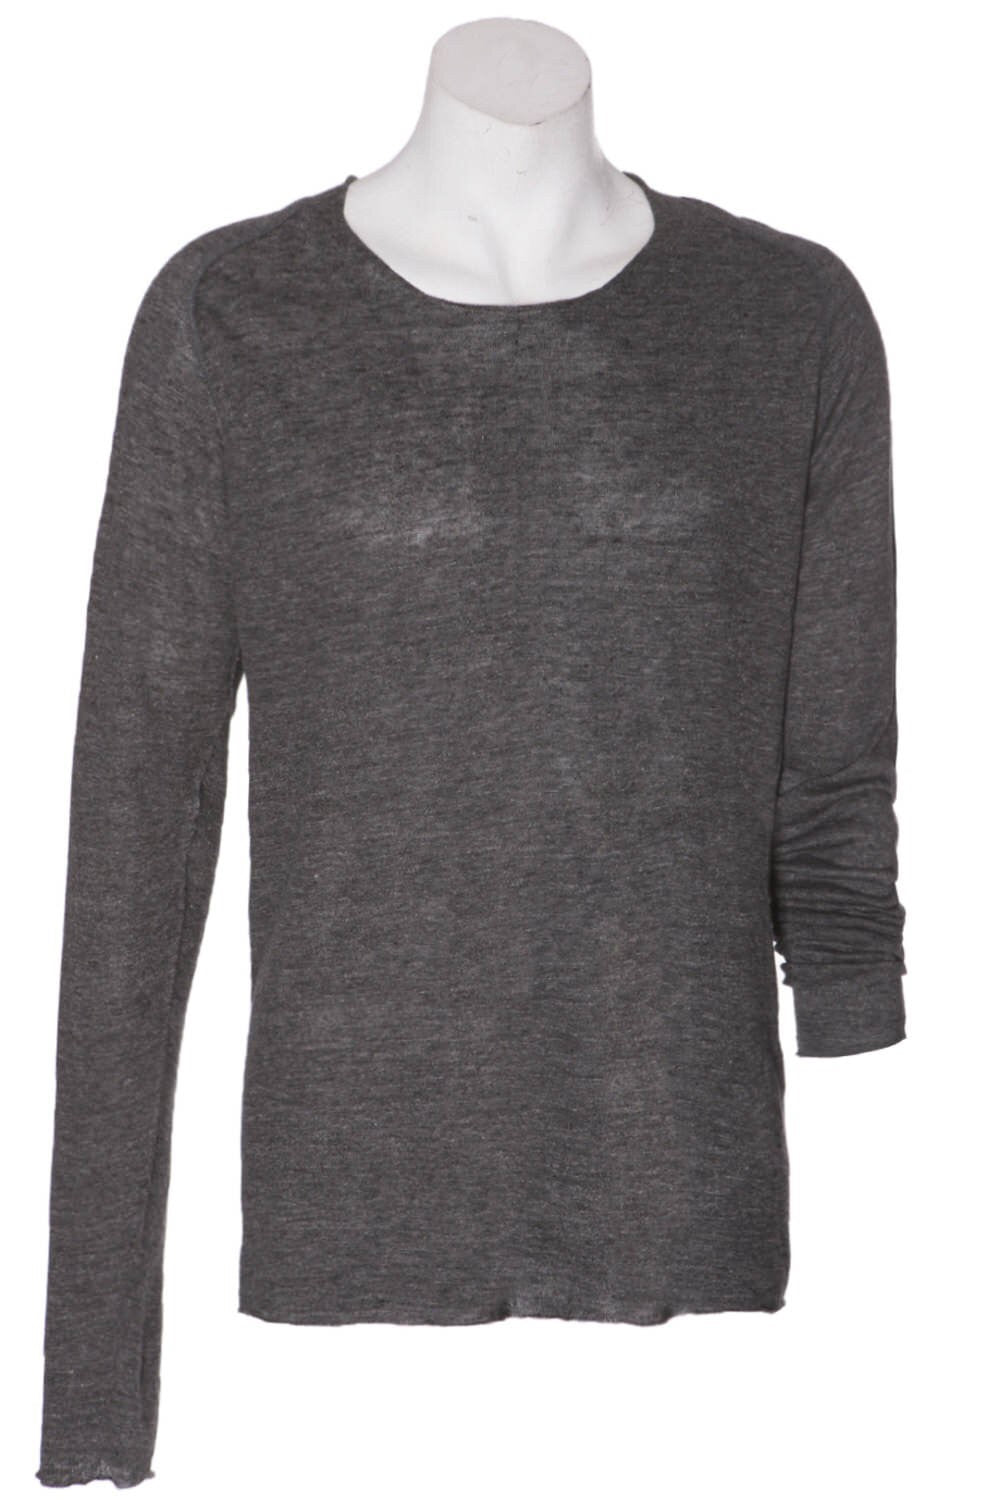 Hannes Roether Black Linen Knit Sweater